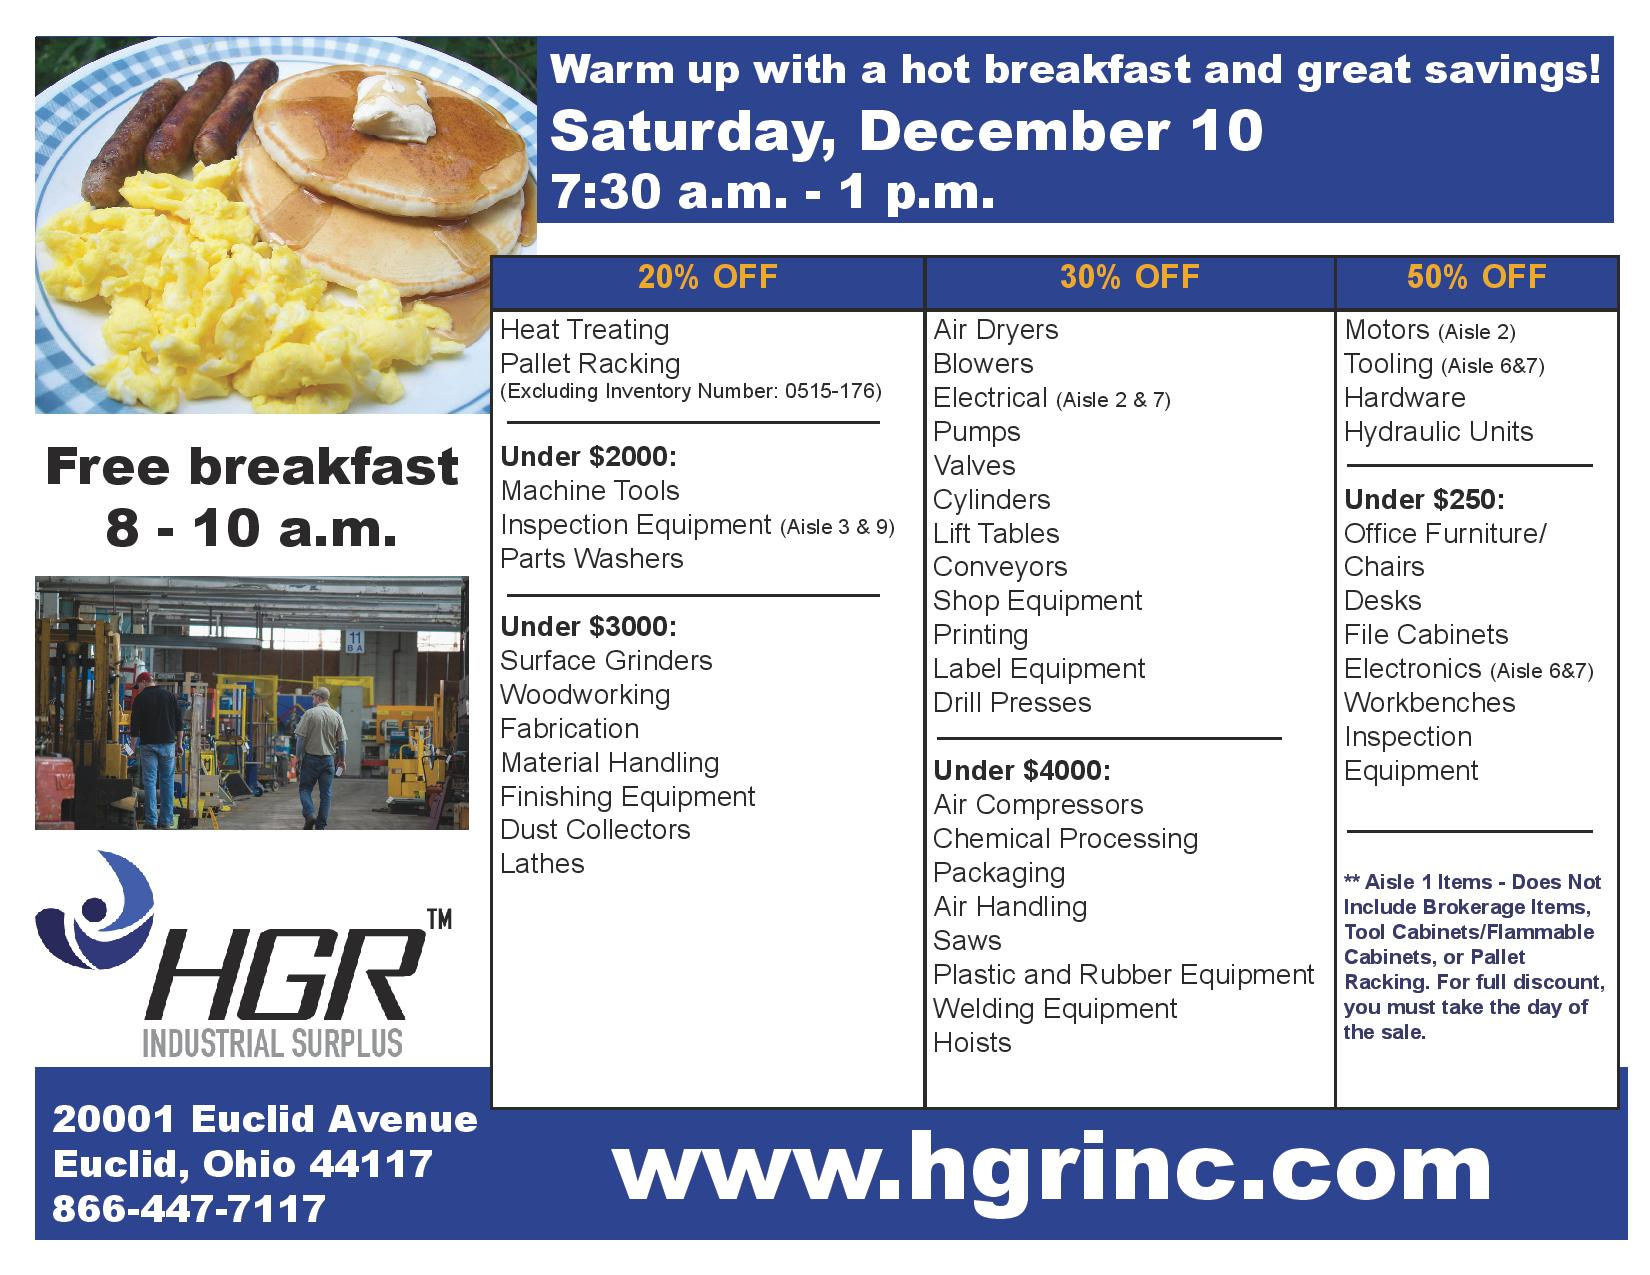 Saturday Dec. 10 HGR Industrial Surplus sale flyer